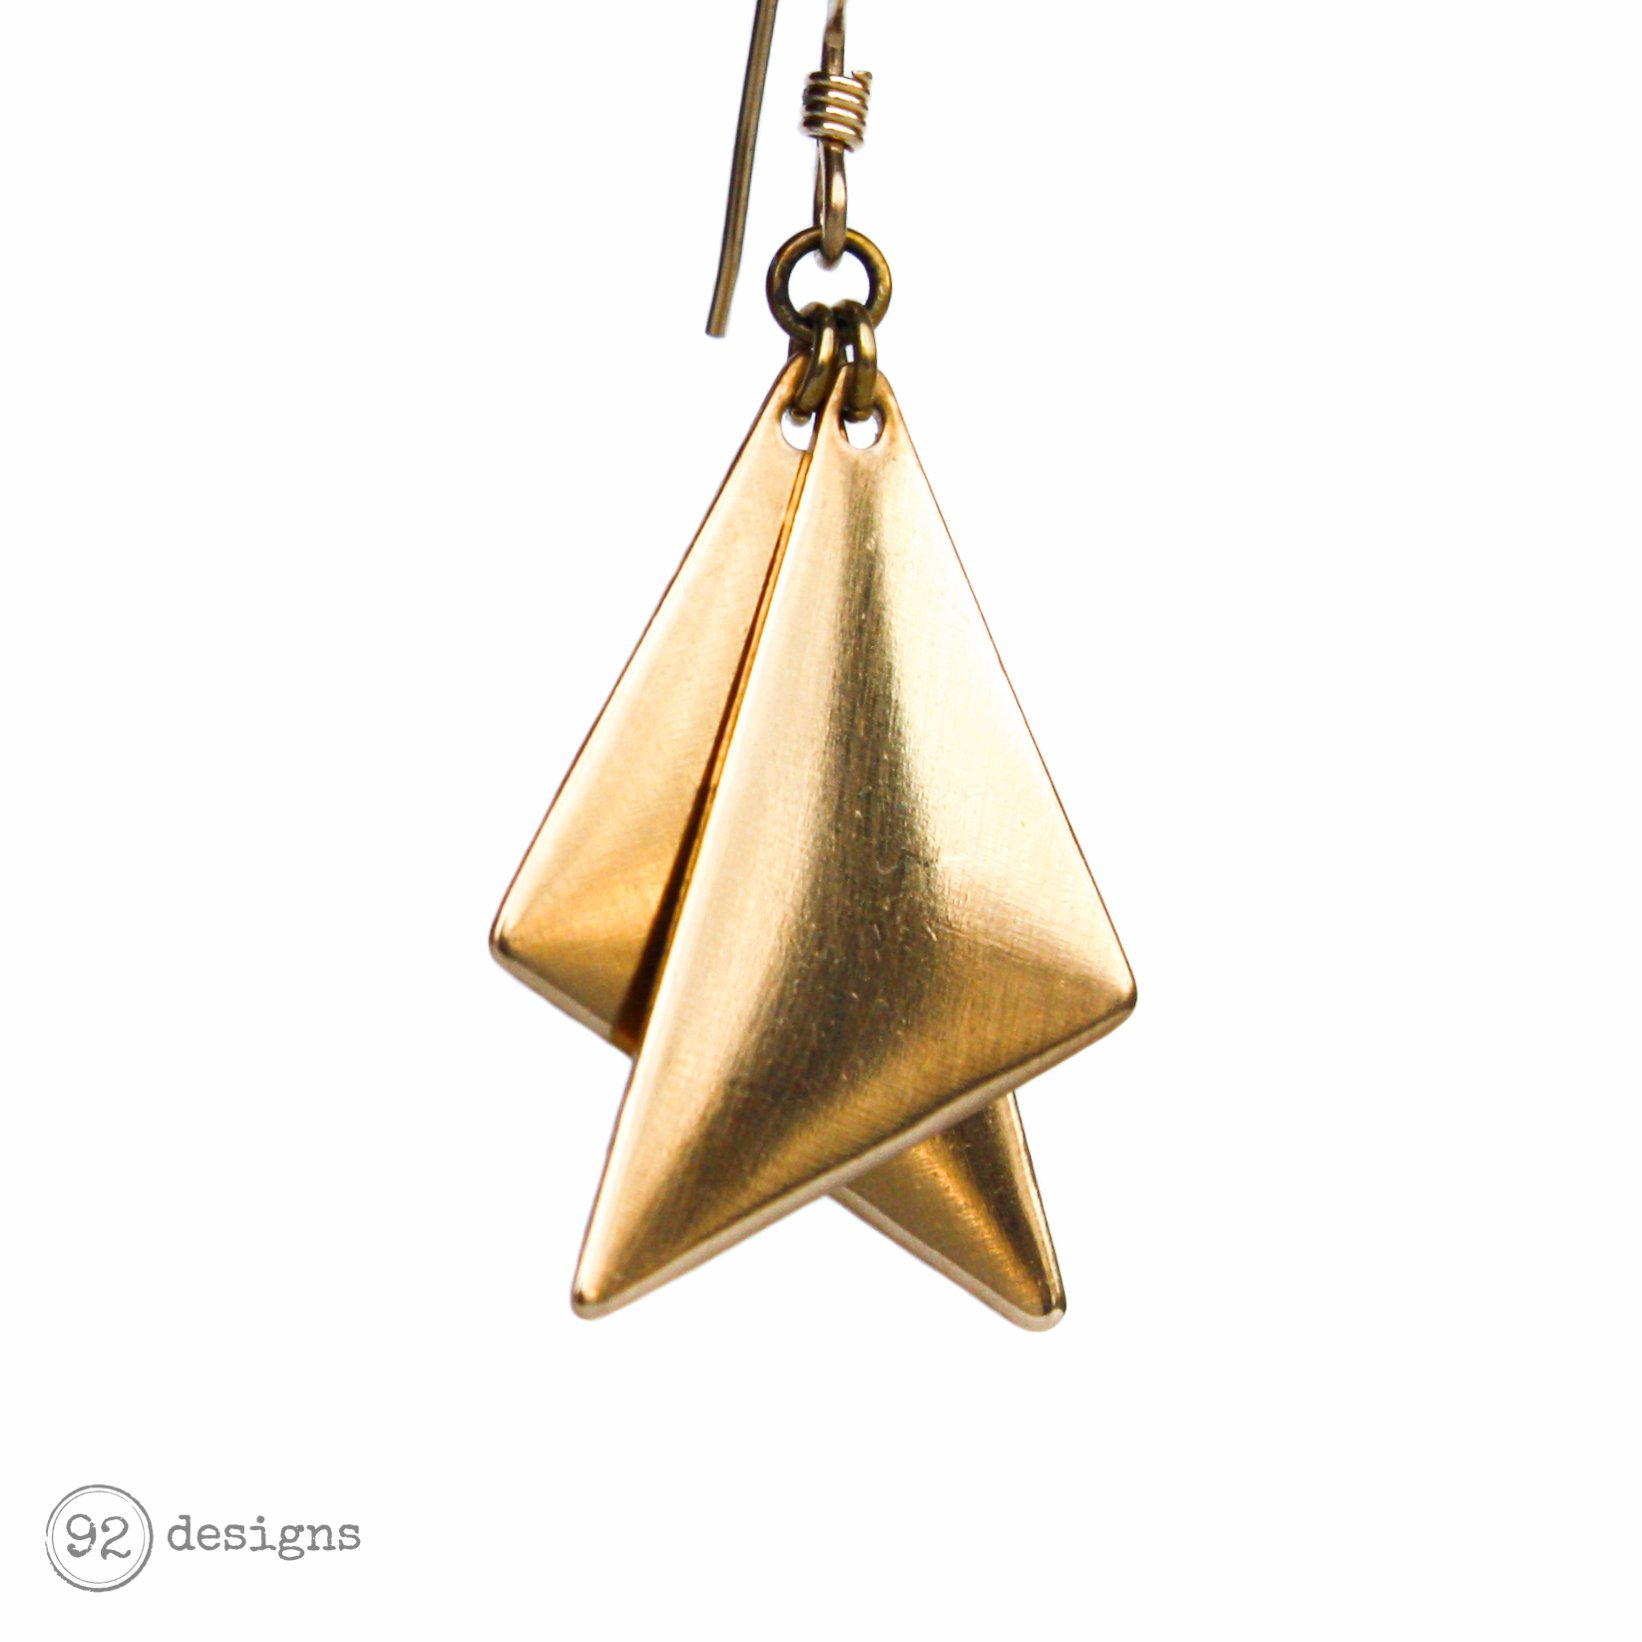 layered right triangles - brass - close